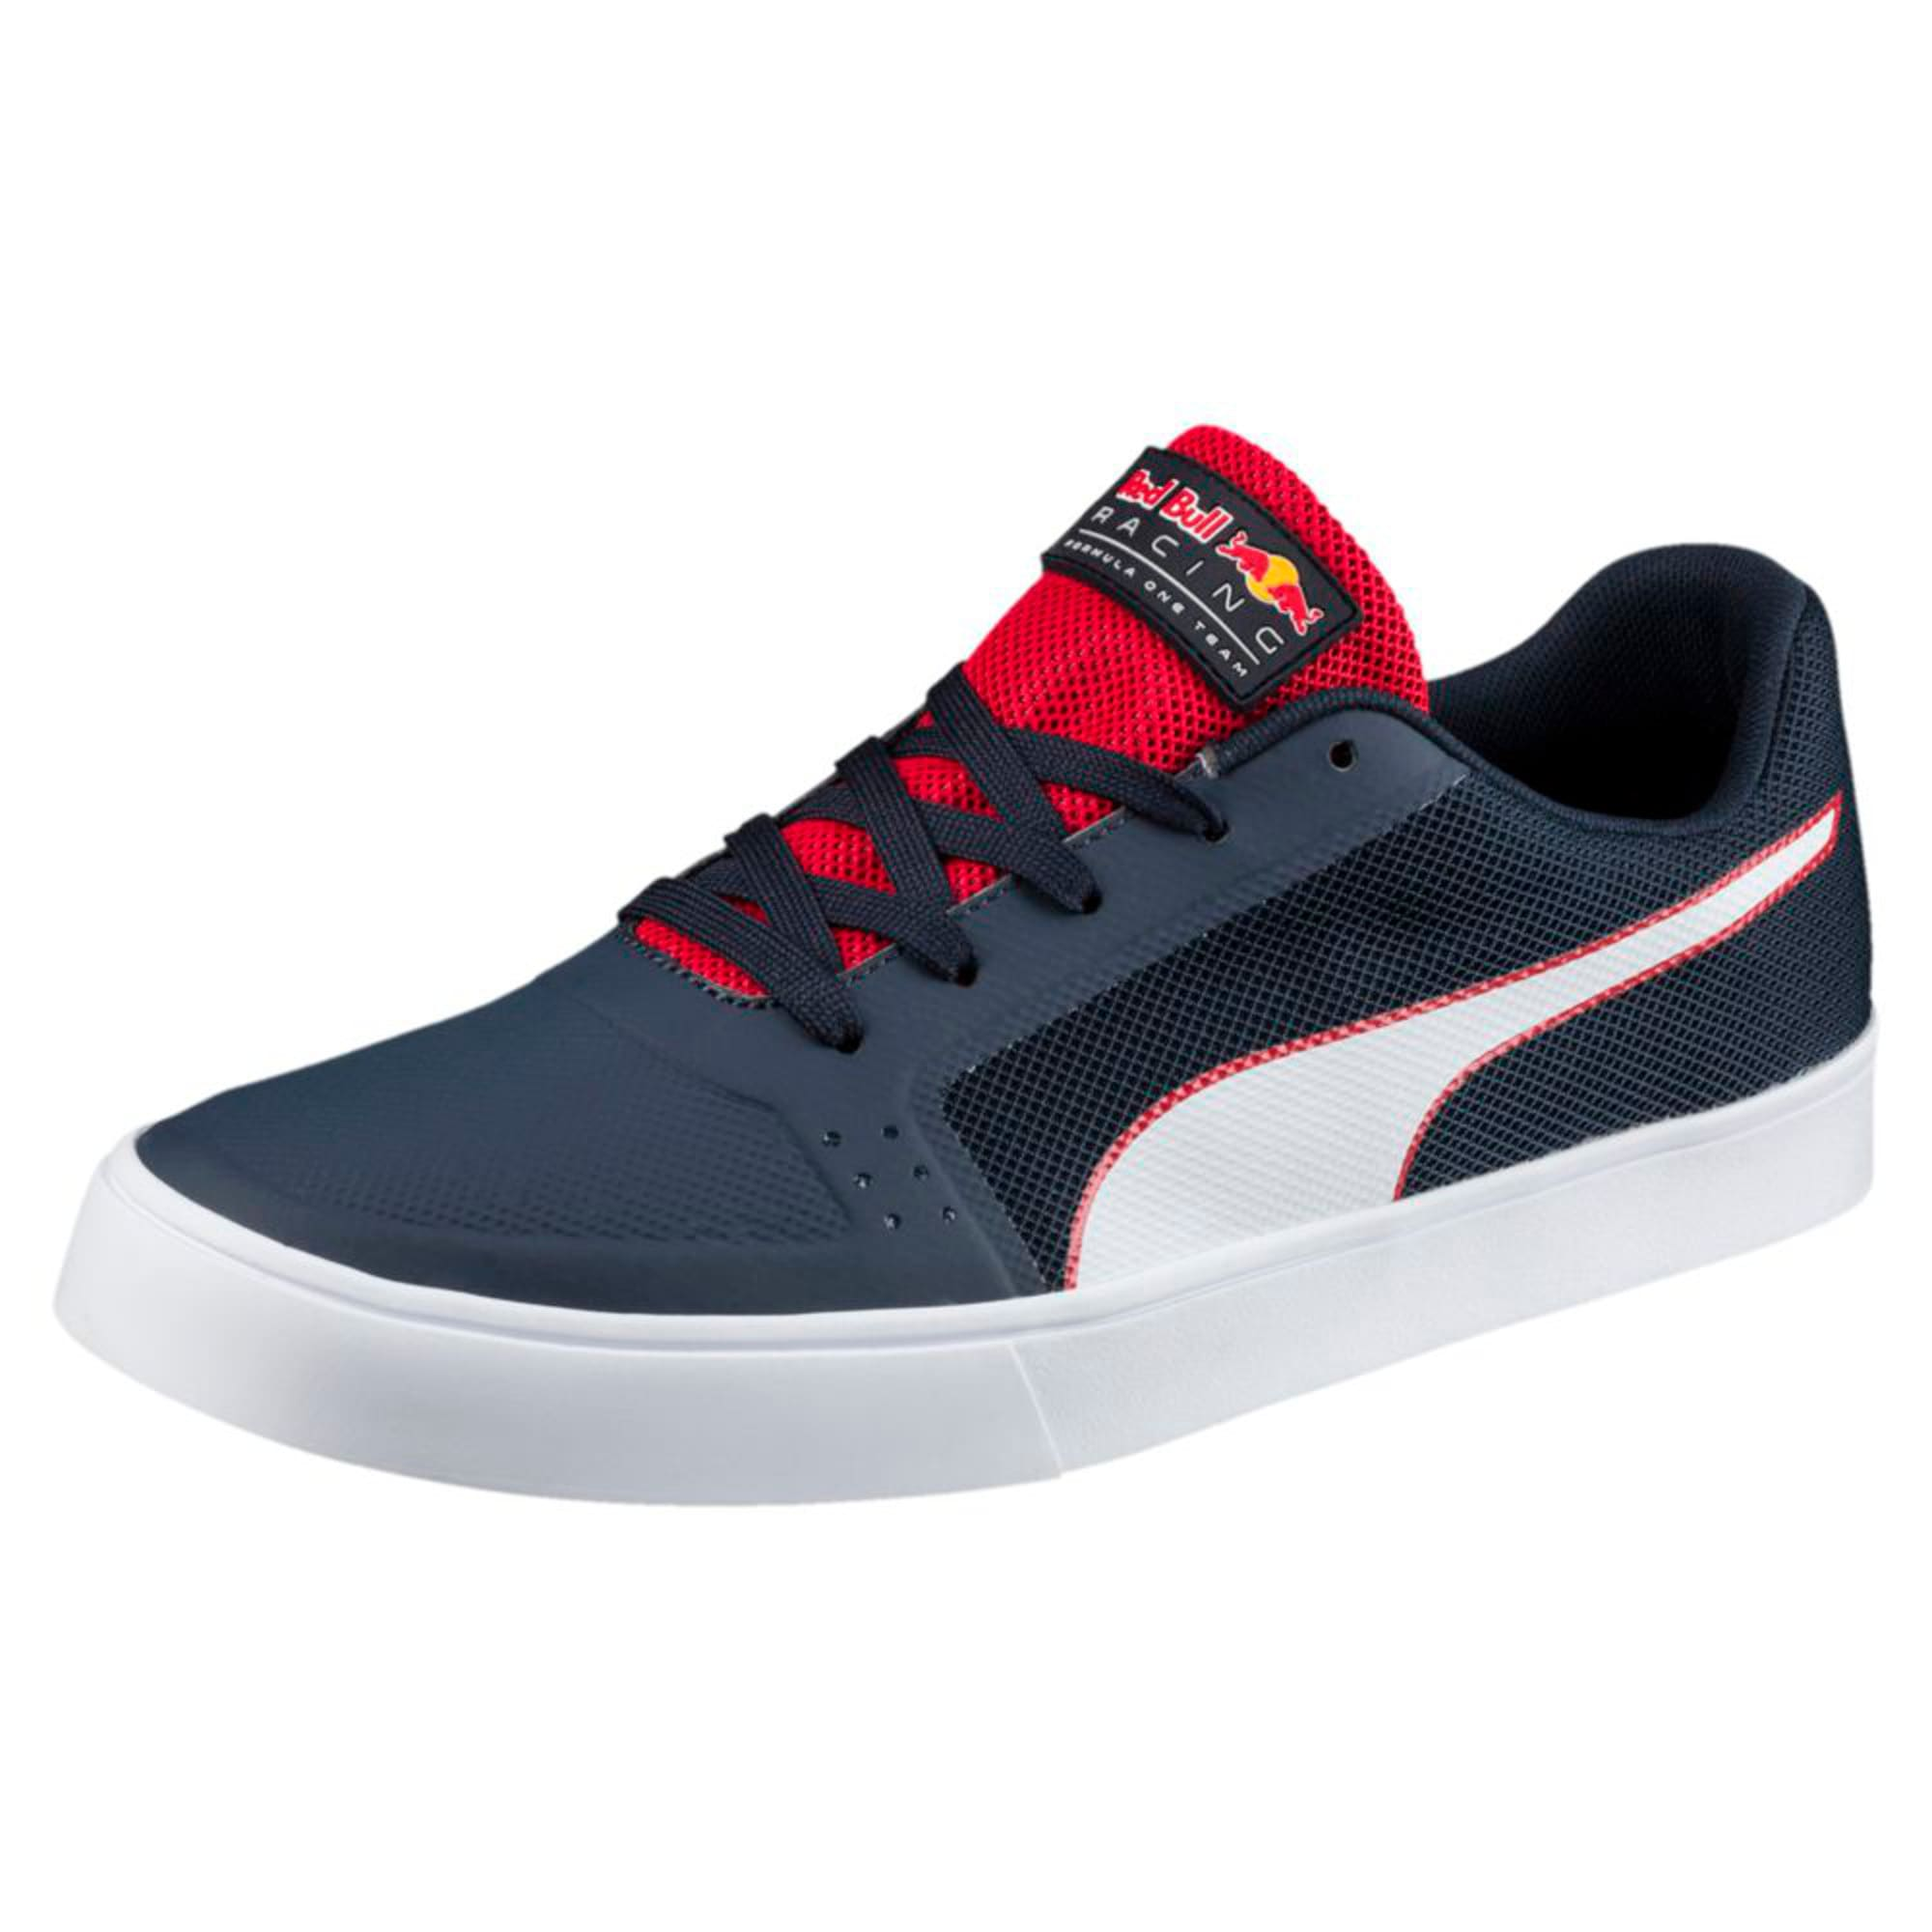 Thumbnail 1 of Red Bull Racing Wings Vulc Trainers, Ttl Eclipse-Wihte-Chns Red, medium-IND